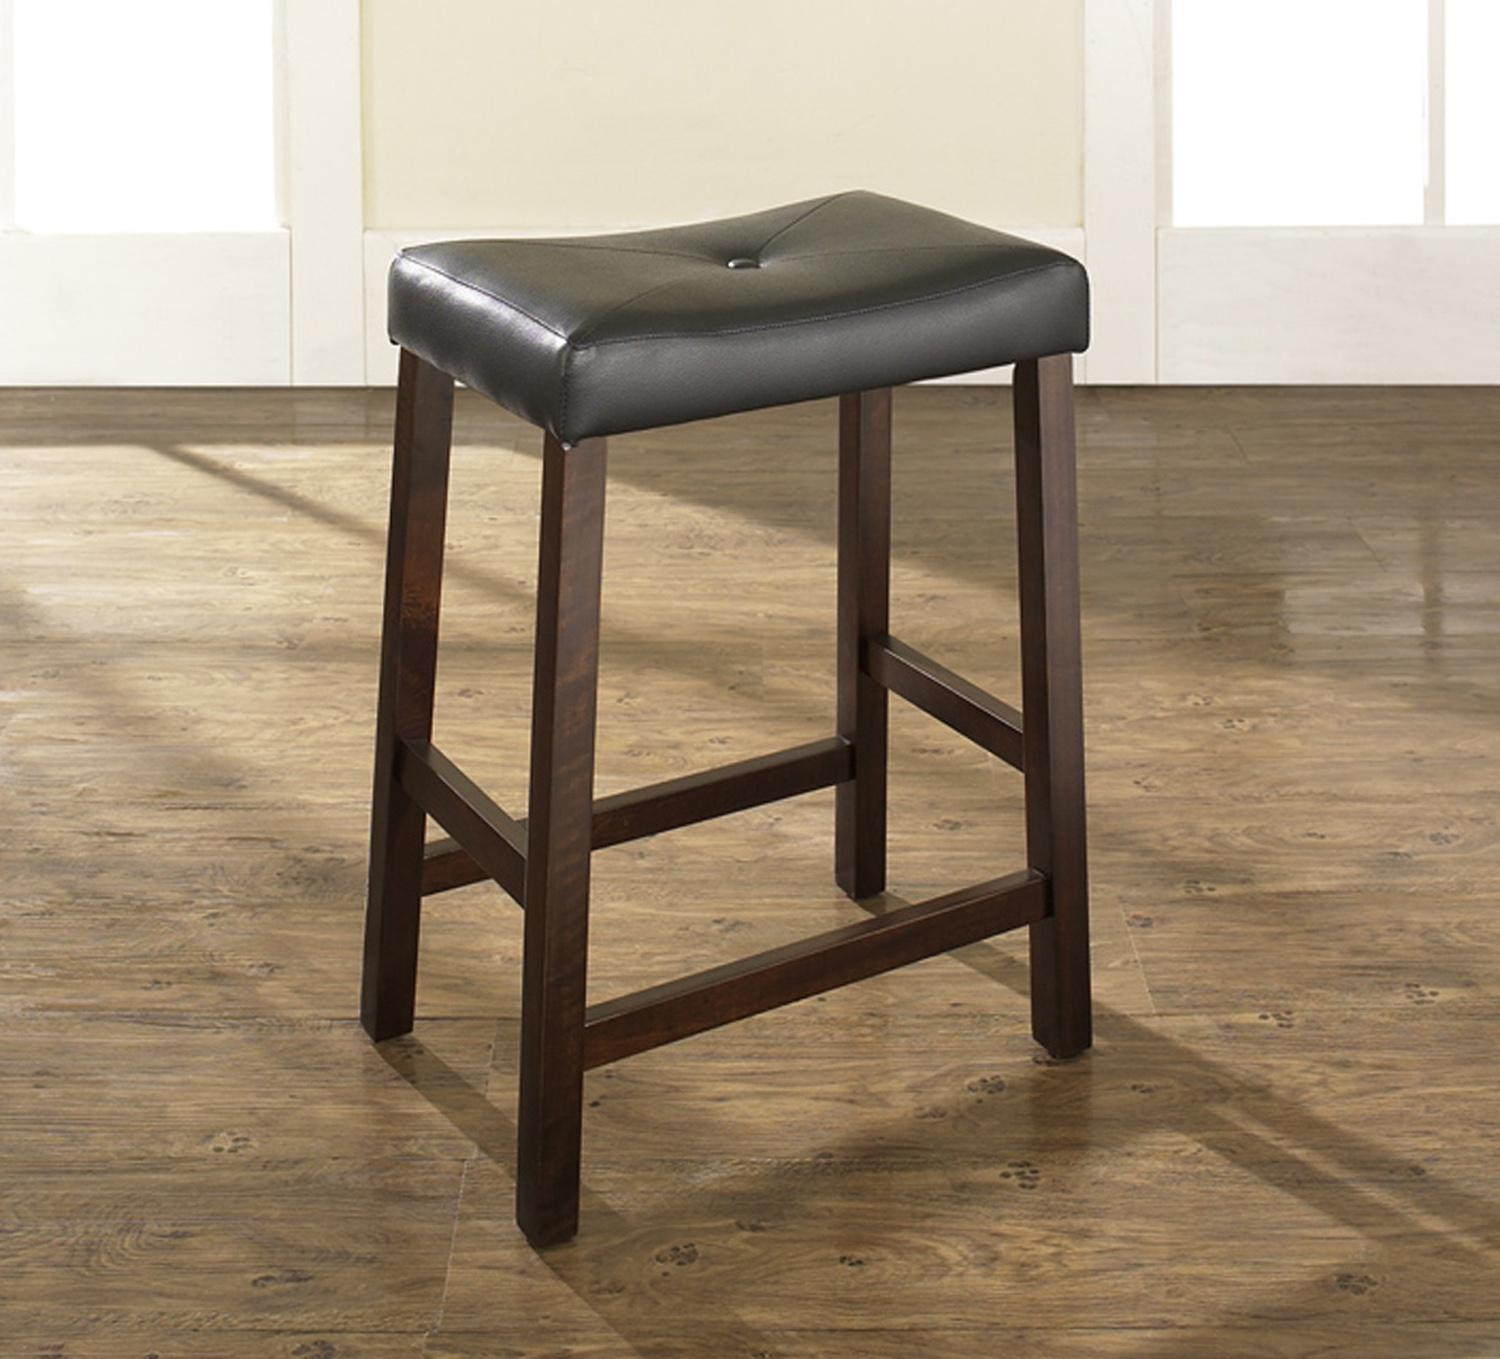 Upholstered saddle seat bar stool with 24 inch seat height for 24 inch bar stools